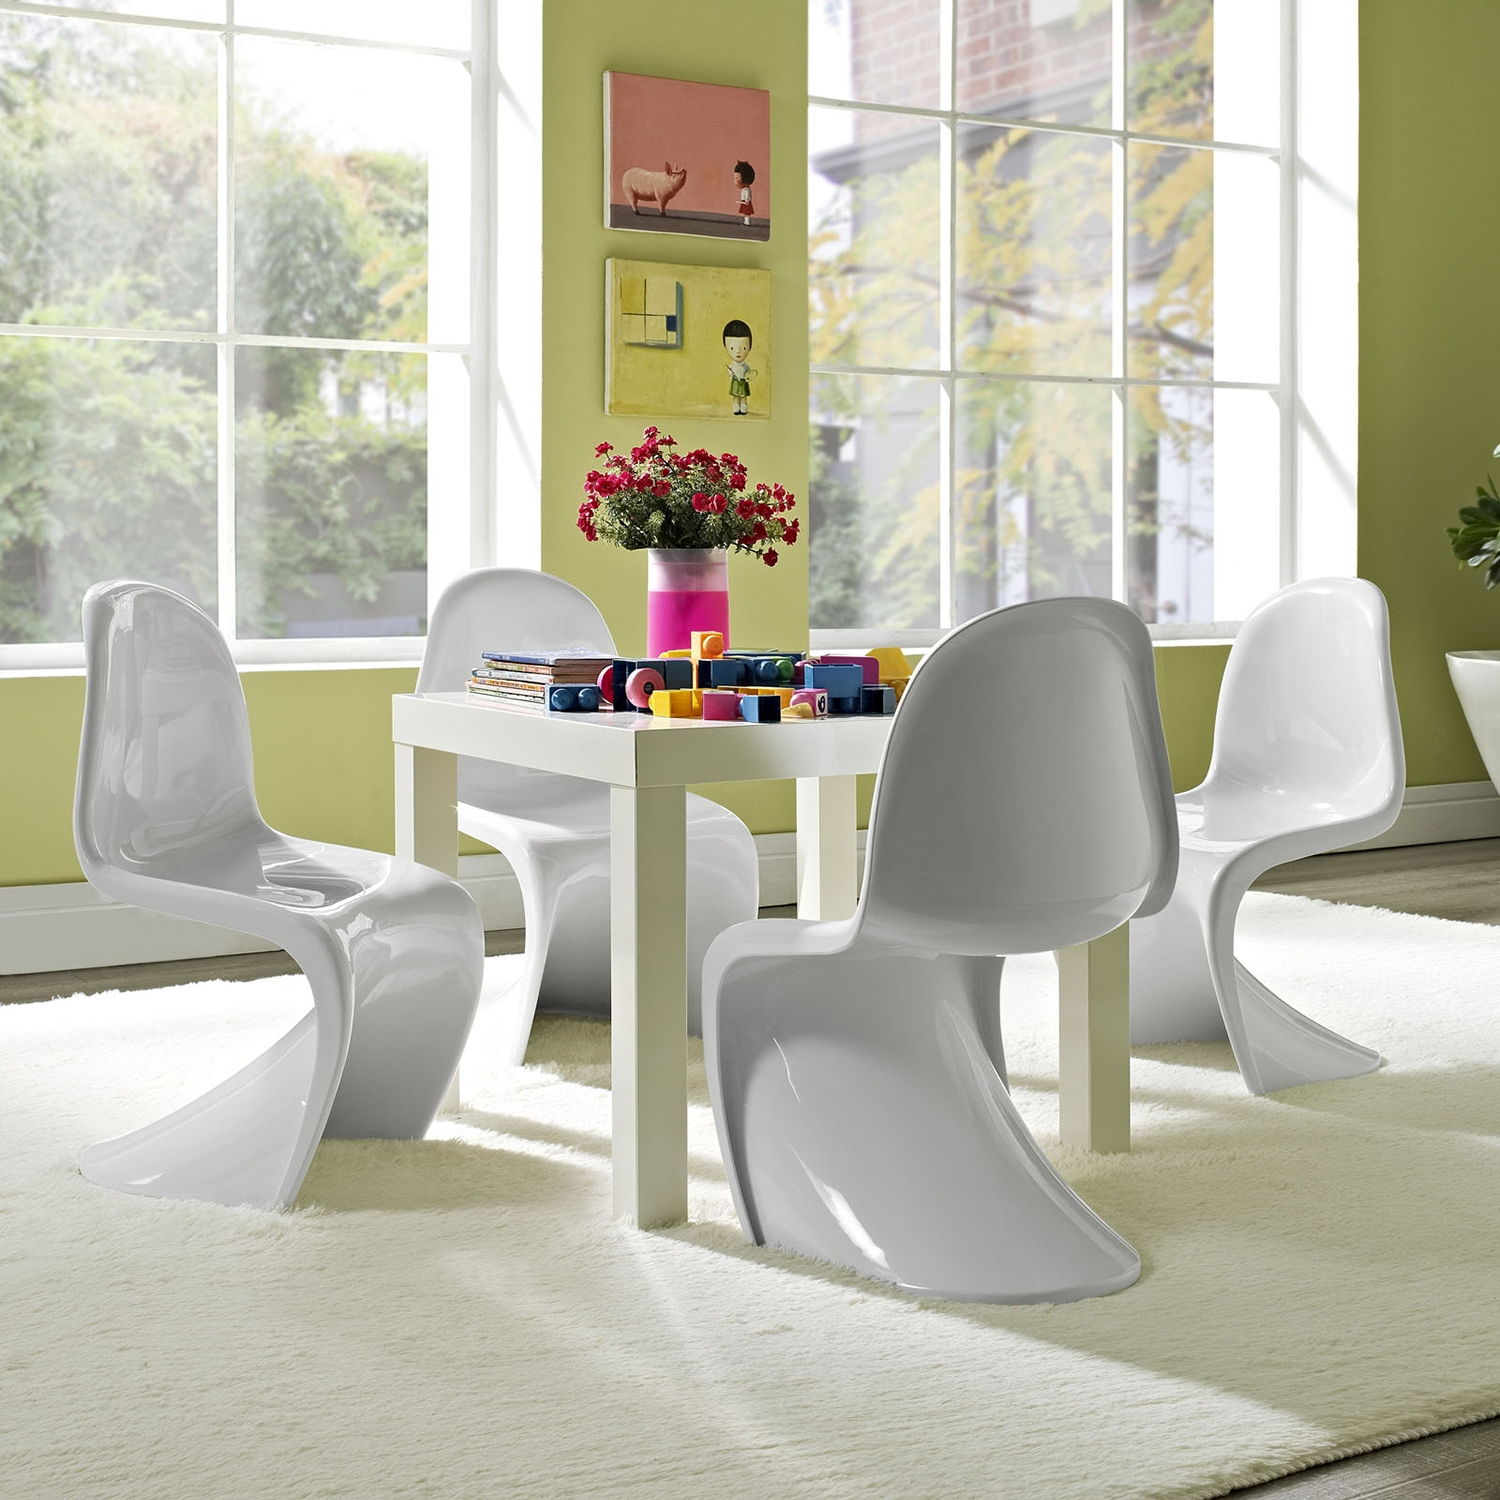 Slither Kids Chair - White, High Back (Set of 4) - EEI-1253-WHI